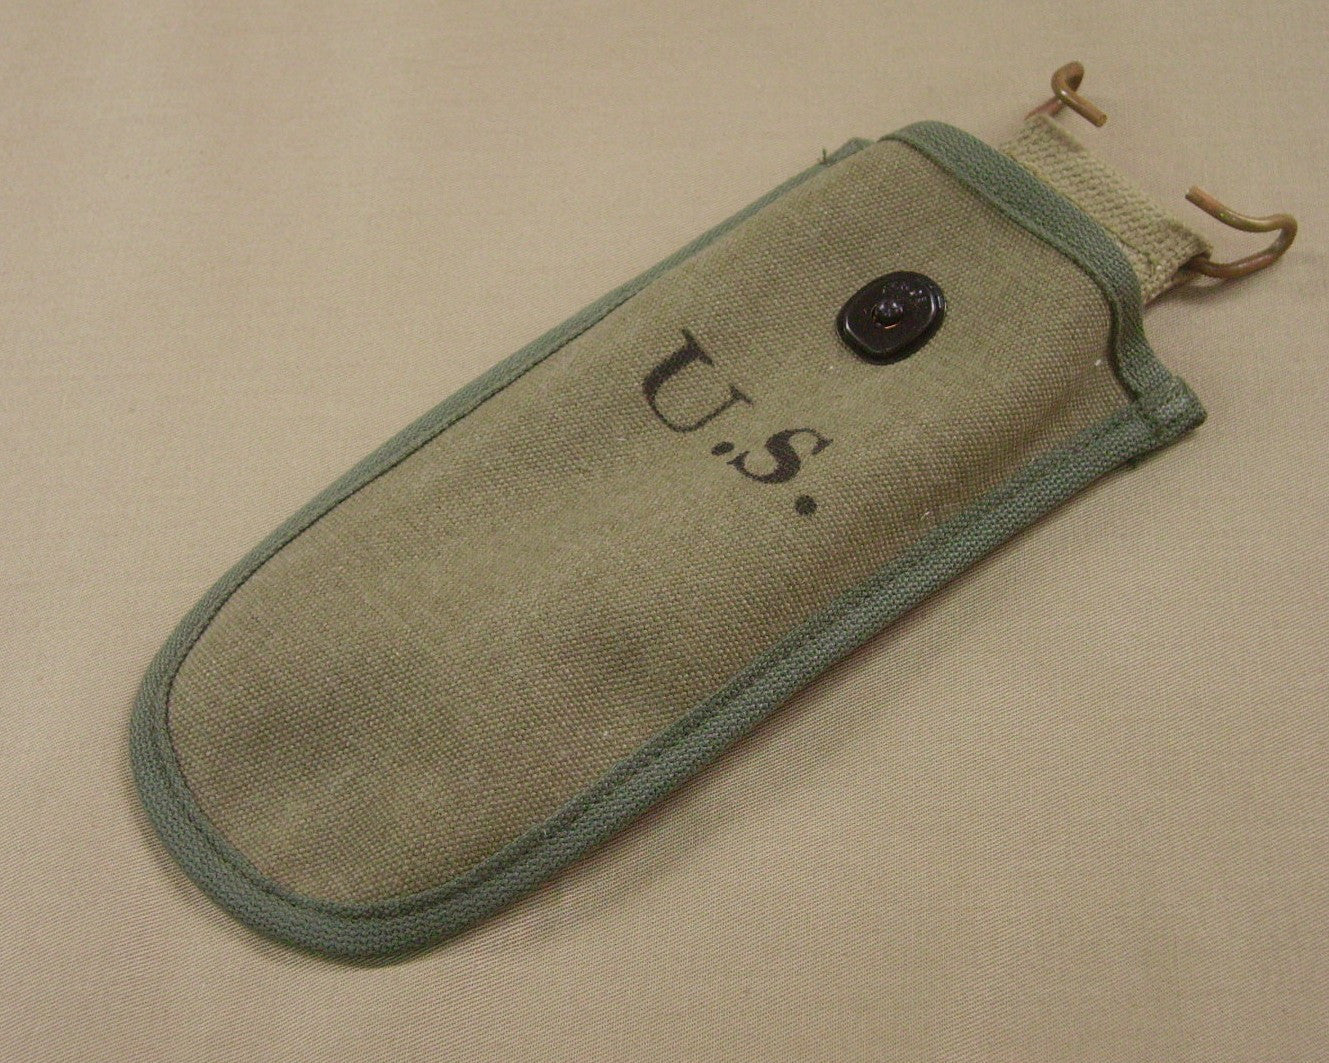 Pouch, Wire Cutter, Army